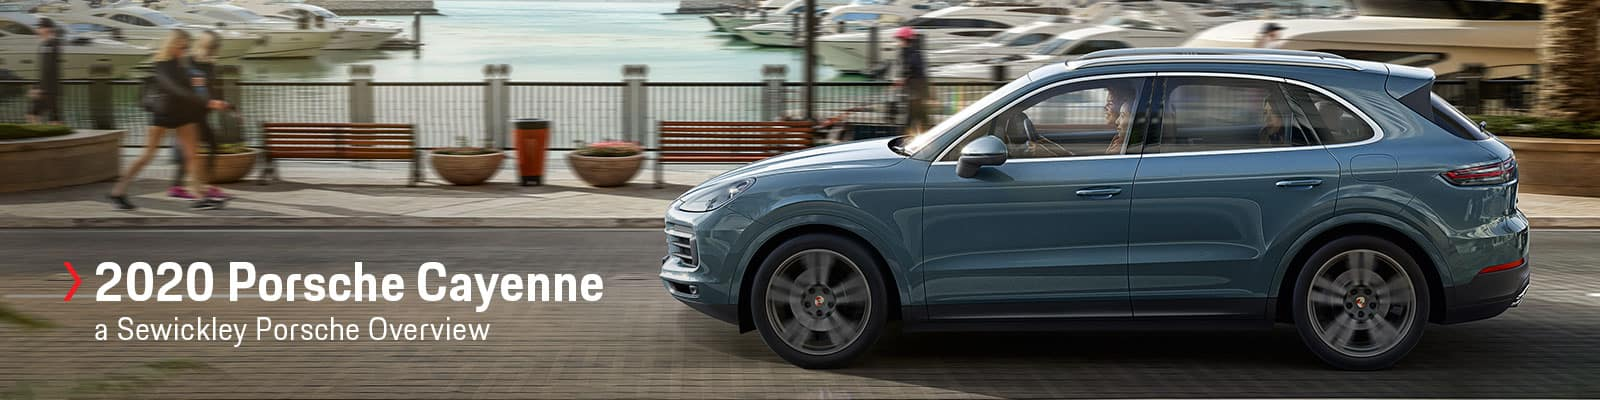 The 2020 Porsche Cayenne at Sewickley Porsche